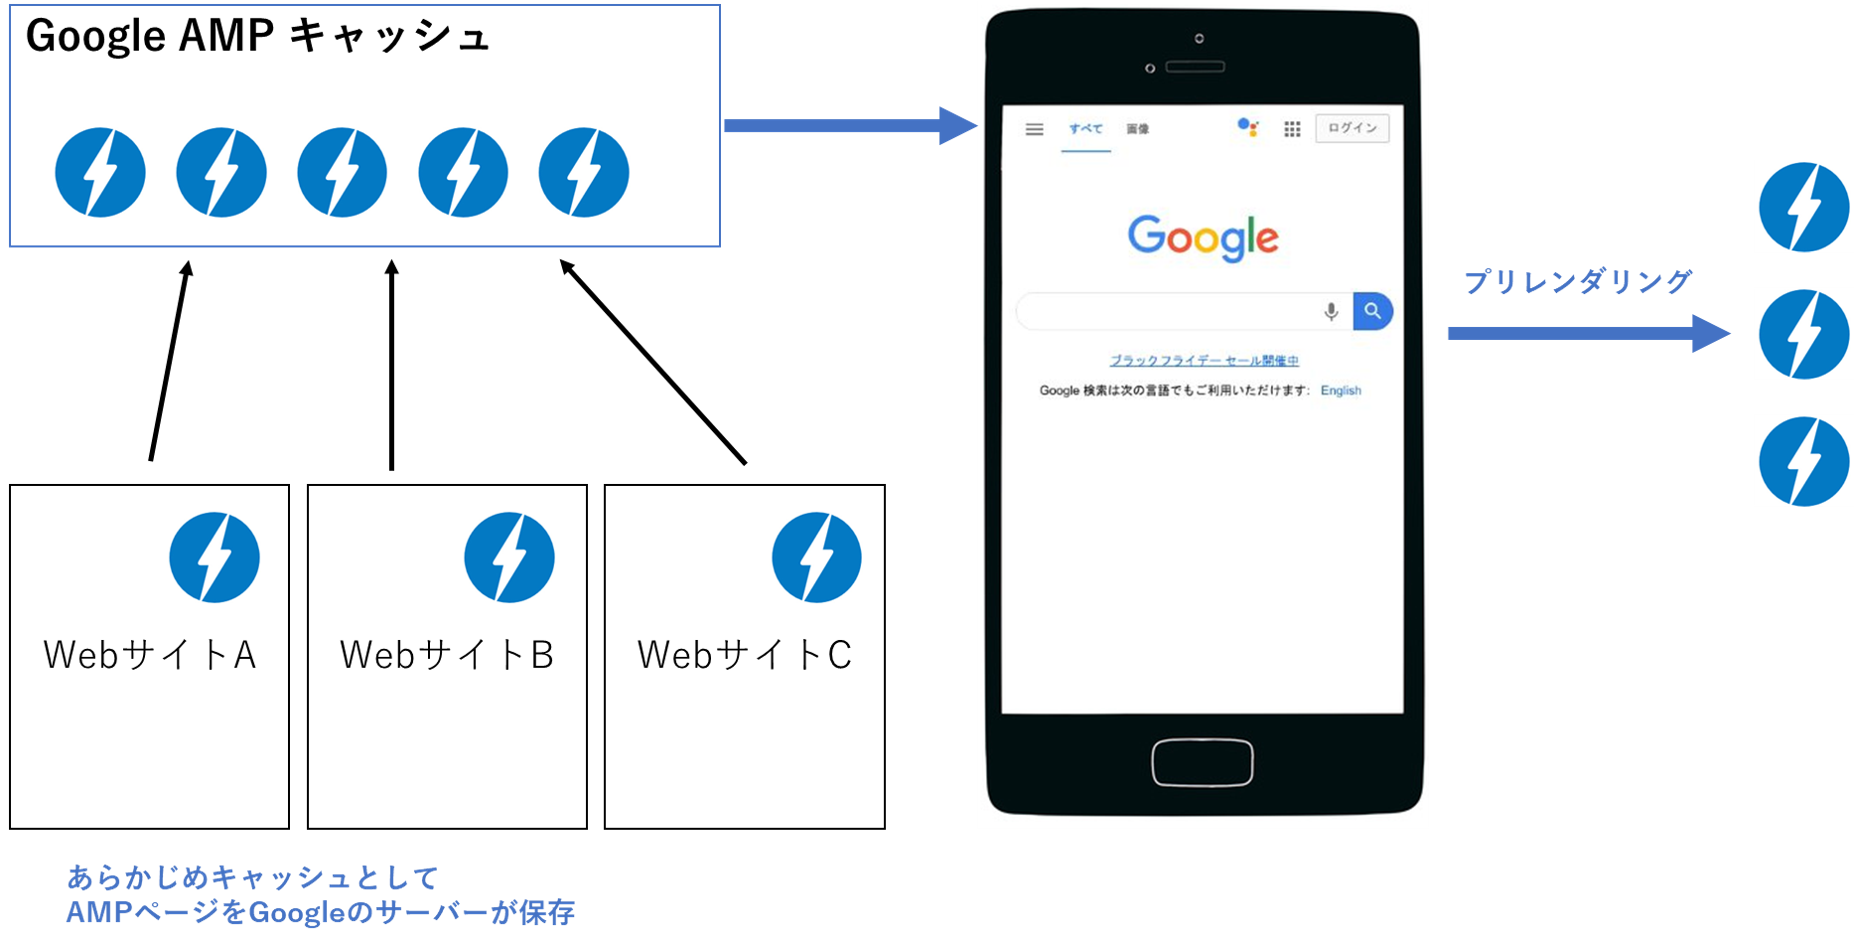 AMP(アンプ・Accelerated Mobile Pages)とは?アンプ化によるSEO効果を解説